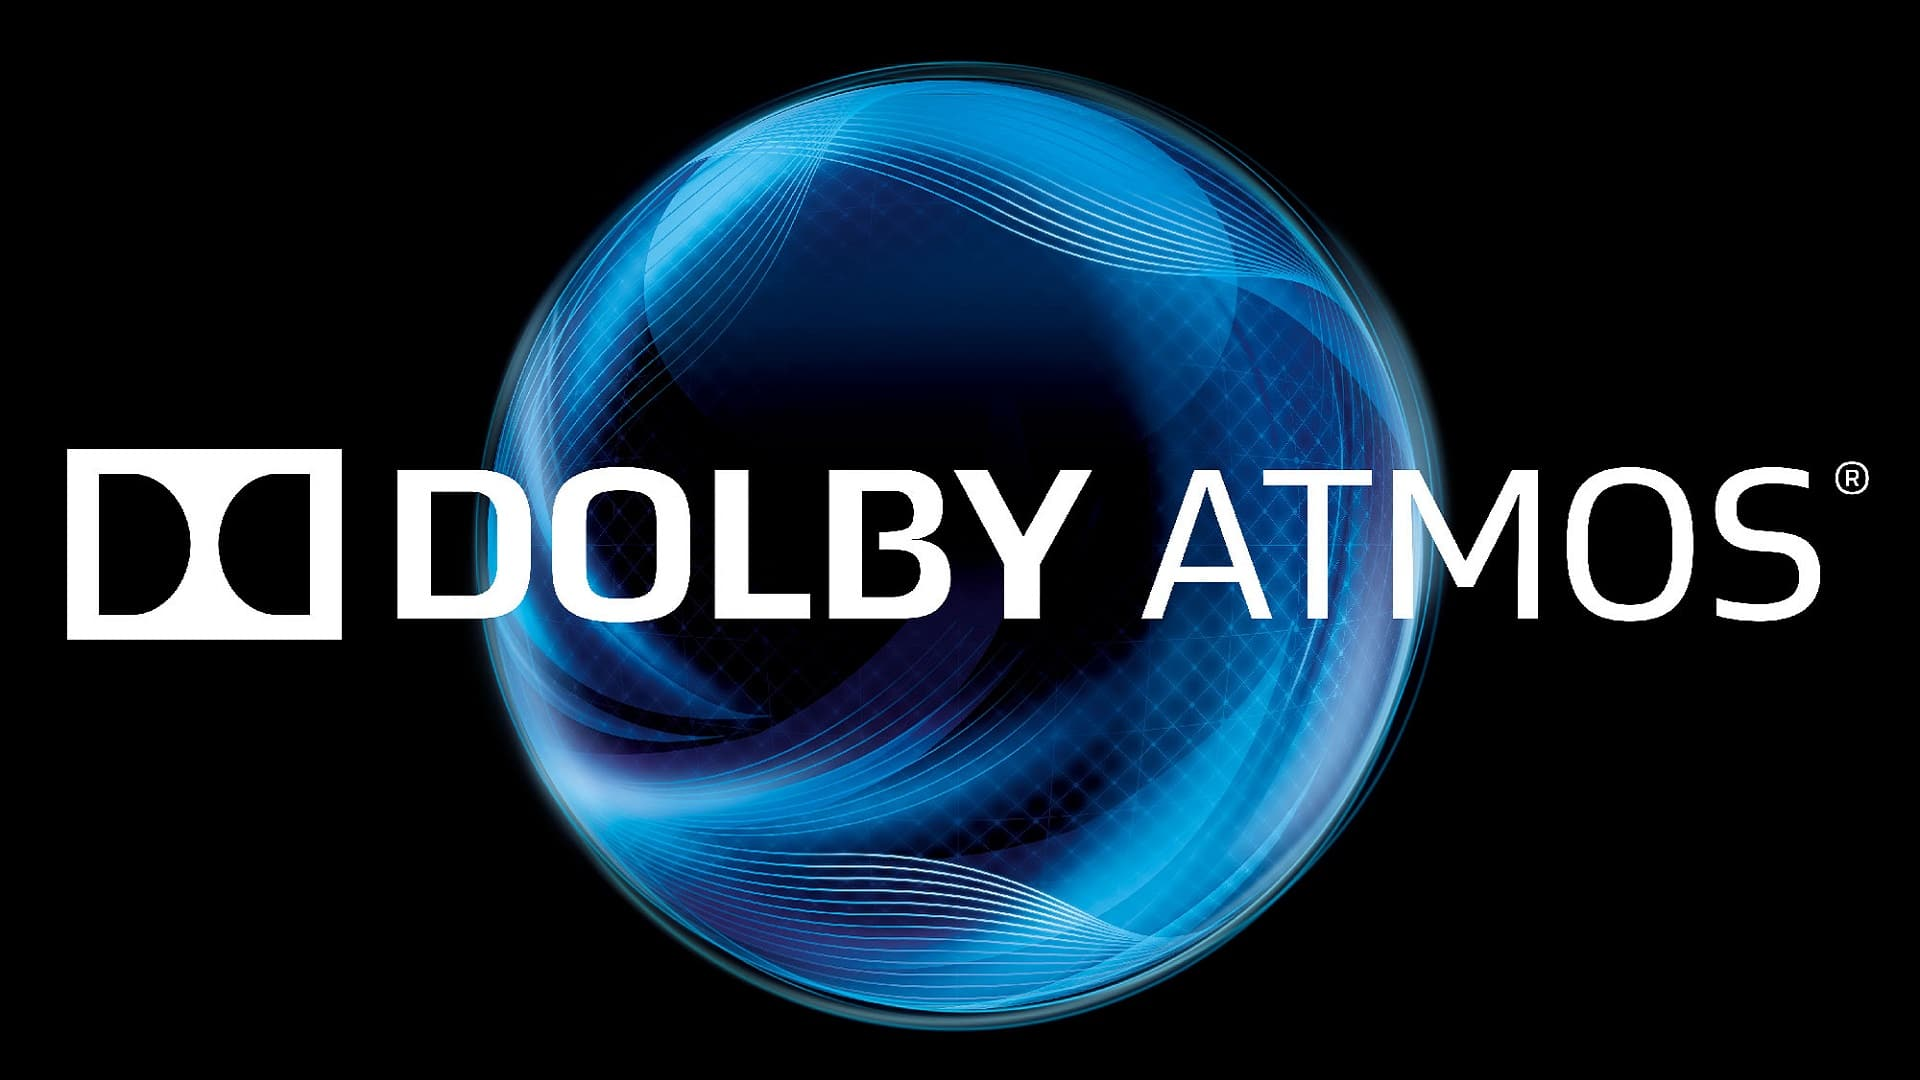 PlayStation Dolby Atmos